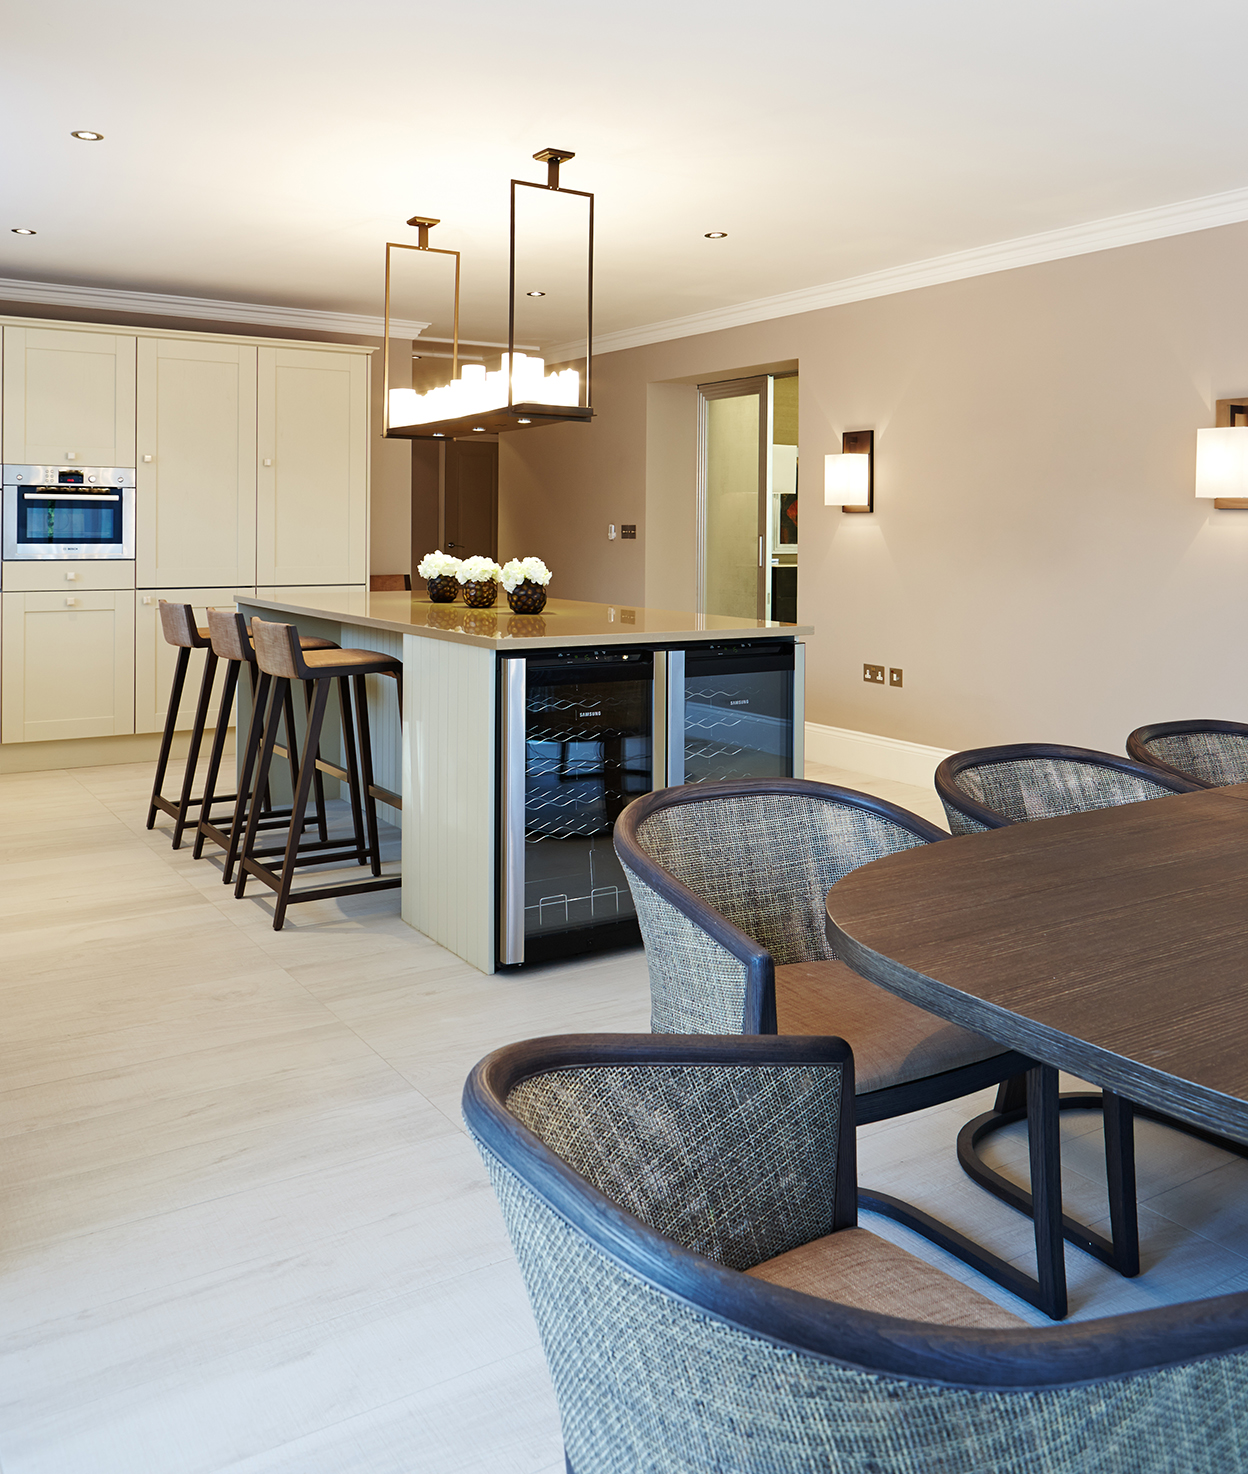 Kitchen and Dining area by Keir Townsend Interiors Ltd